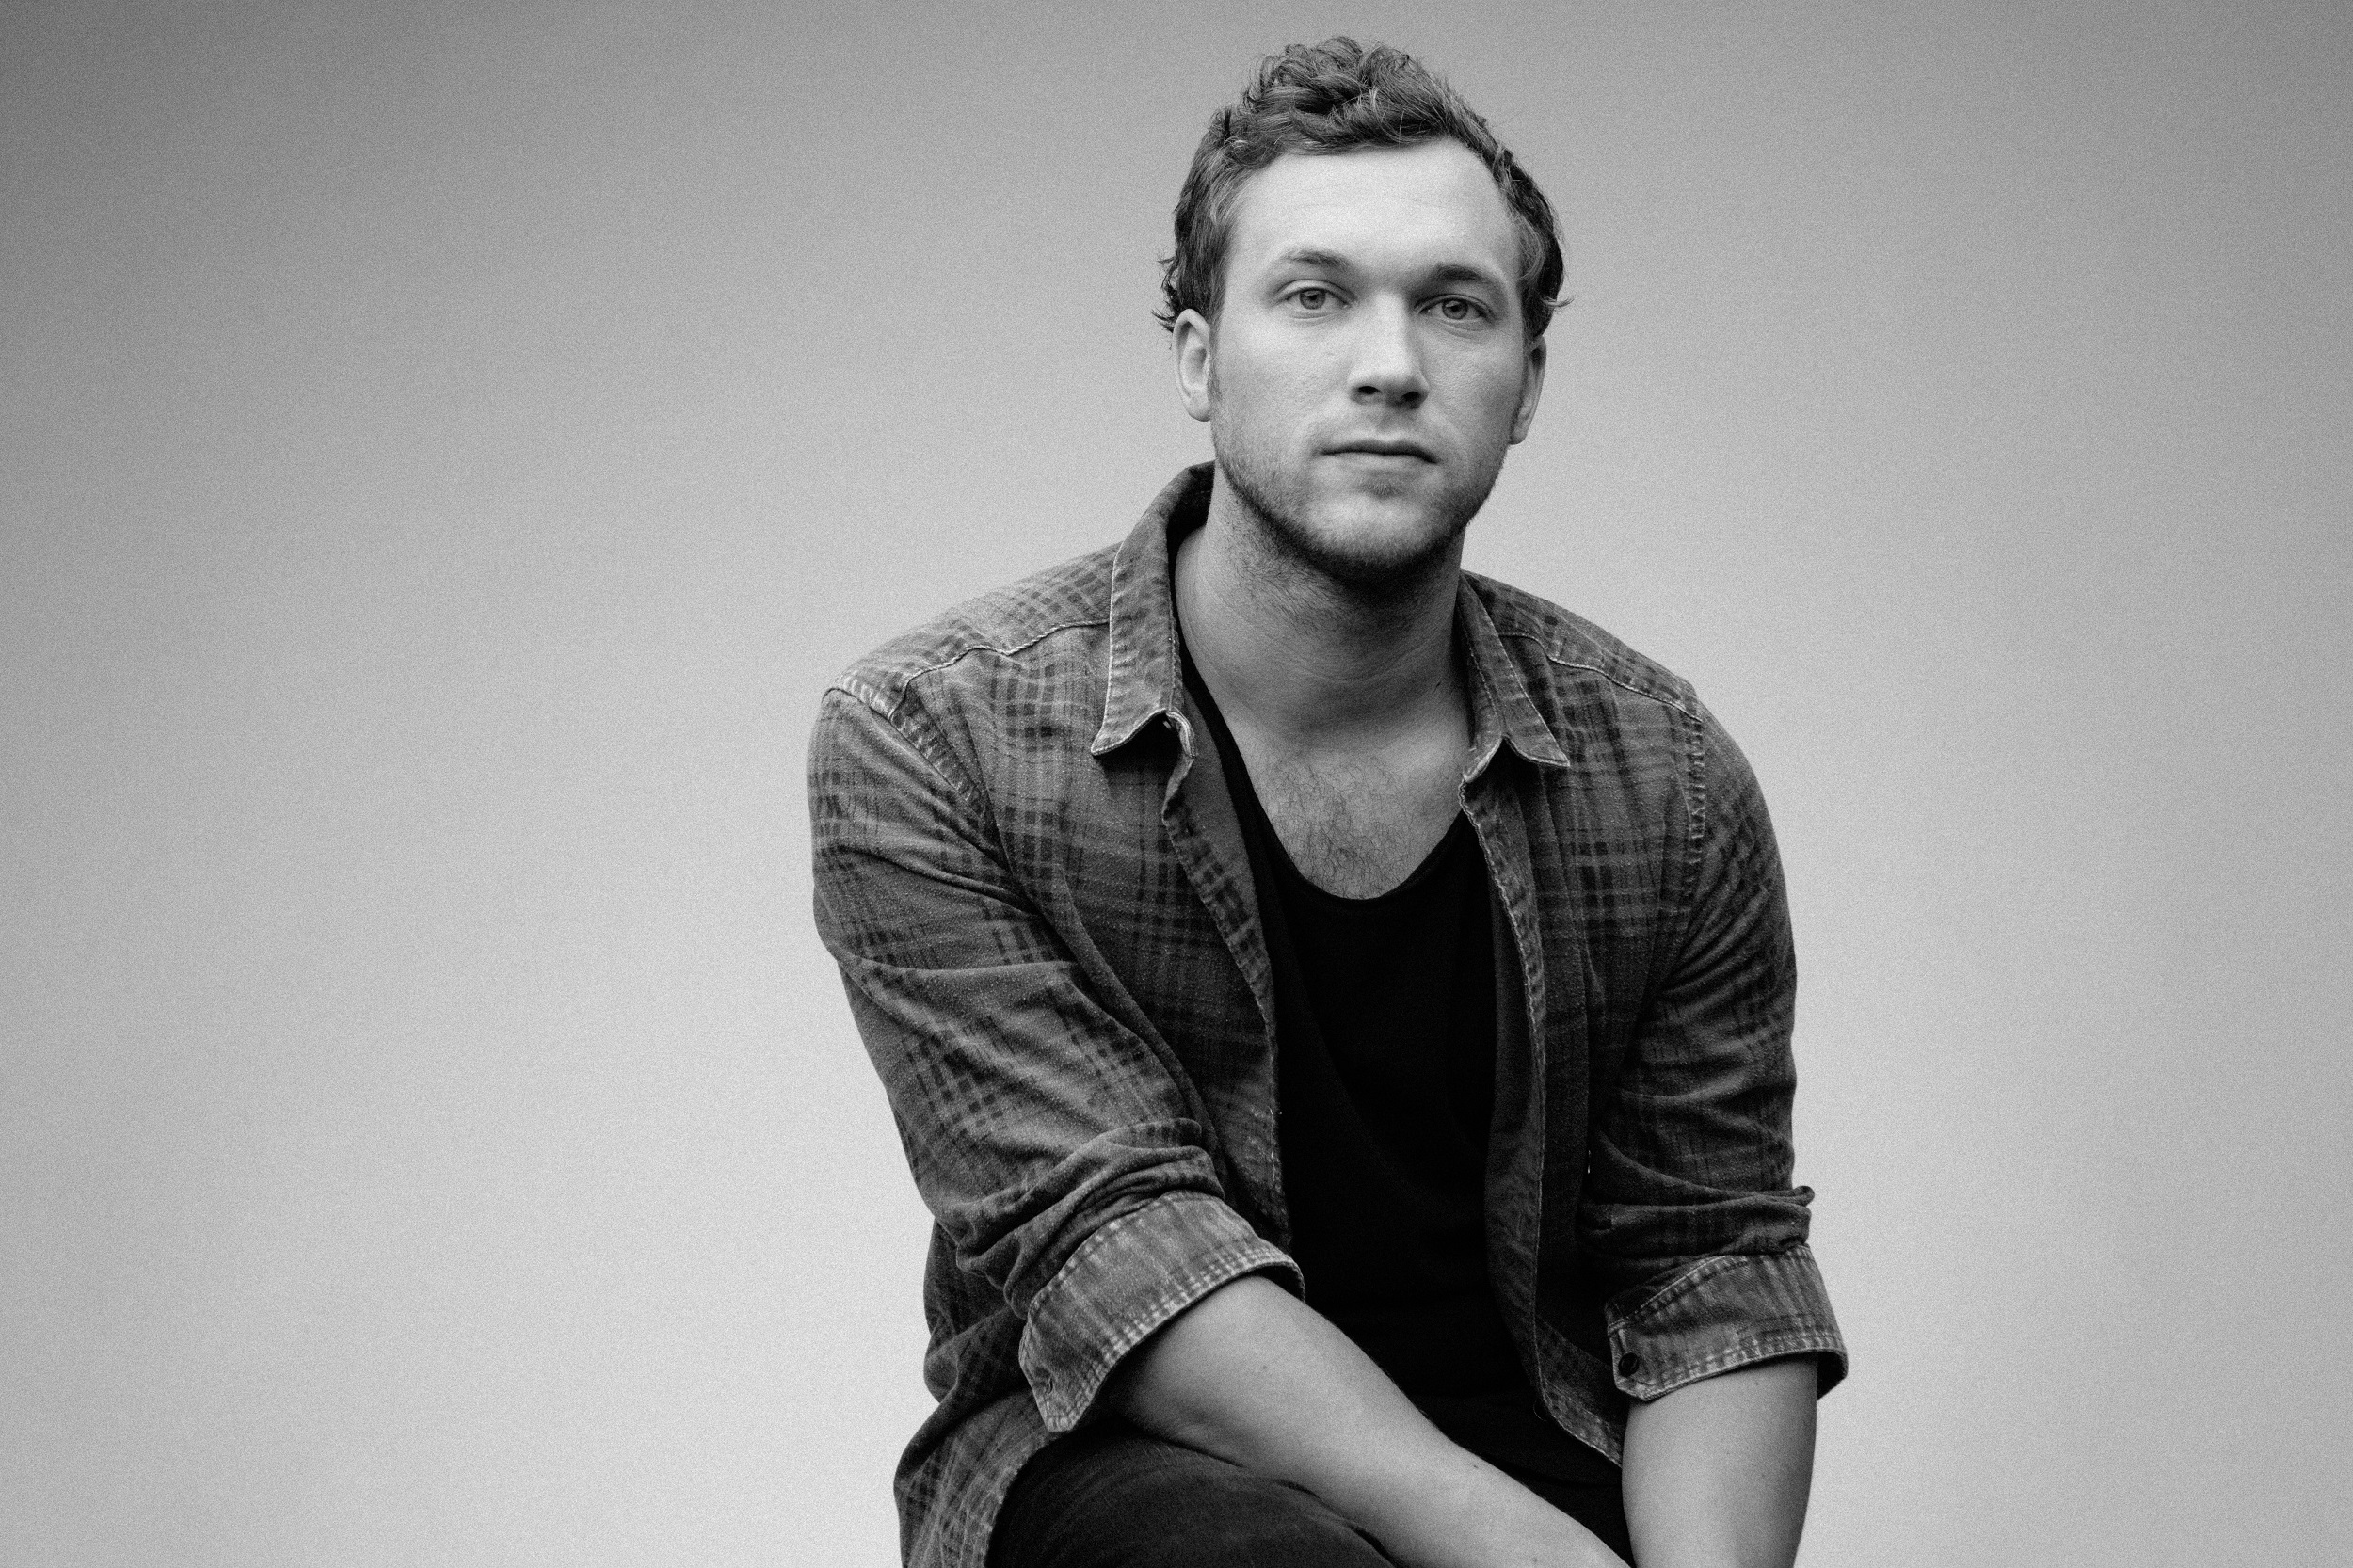 Phillip-Phillips-photo.jpg&f=1&nofb=1